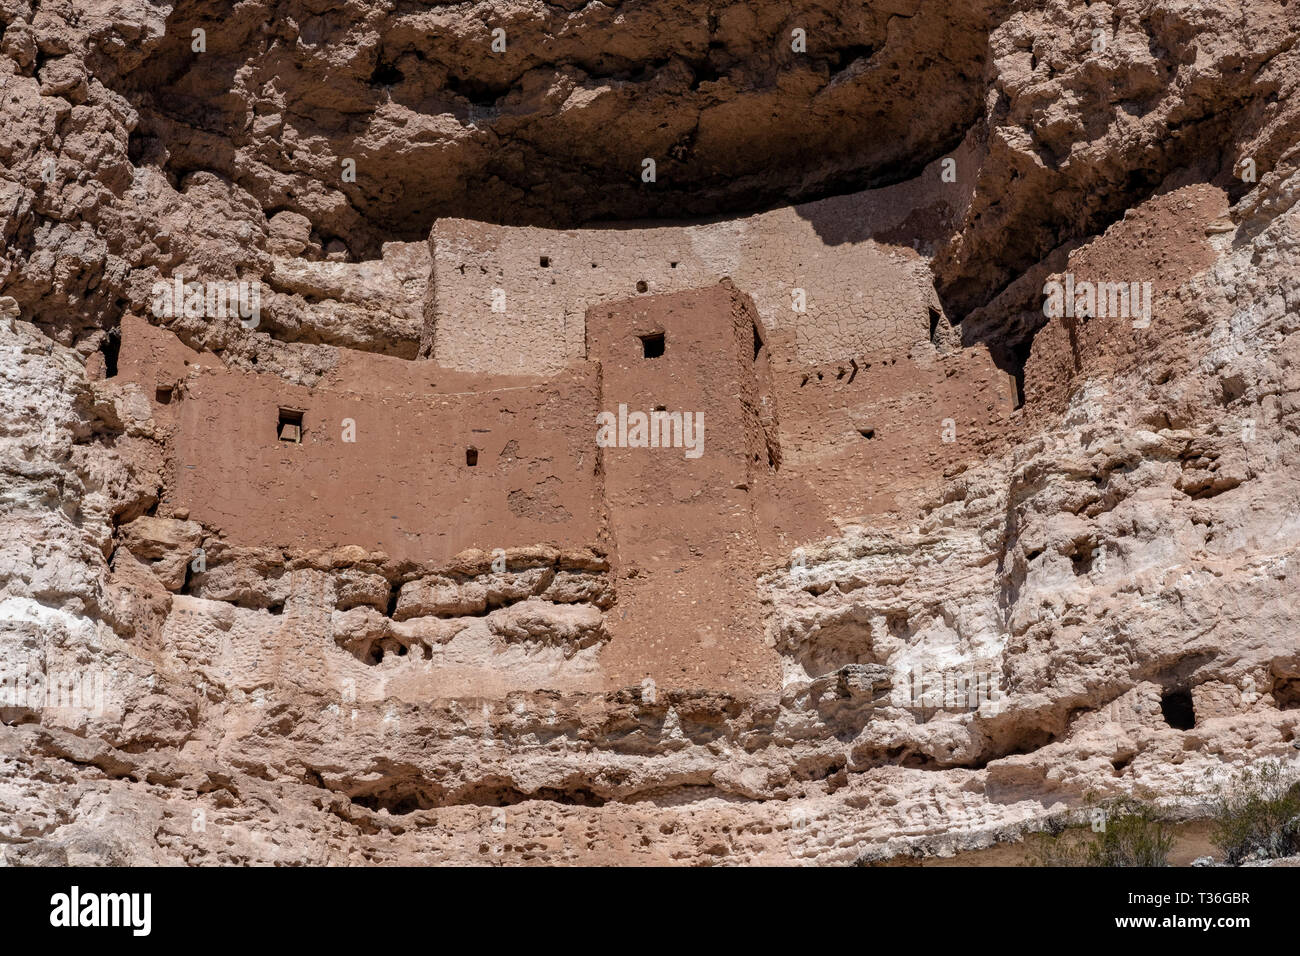 Montezuma Castle in Montezuma Castle National Monument is an example of a Pre-Columbian permanent dwelling carved in a limestone cliff. Stock Photo